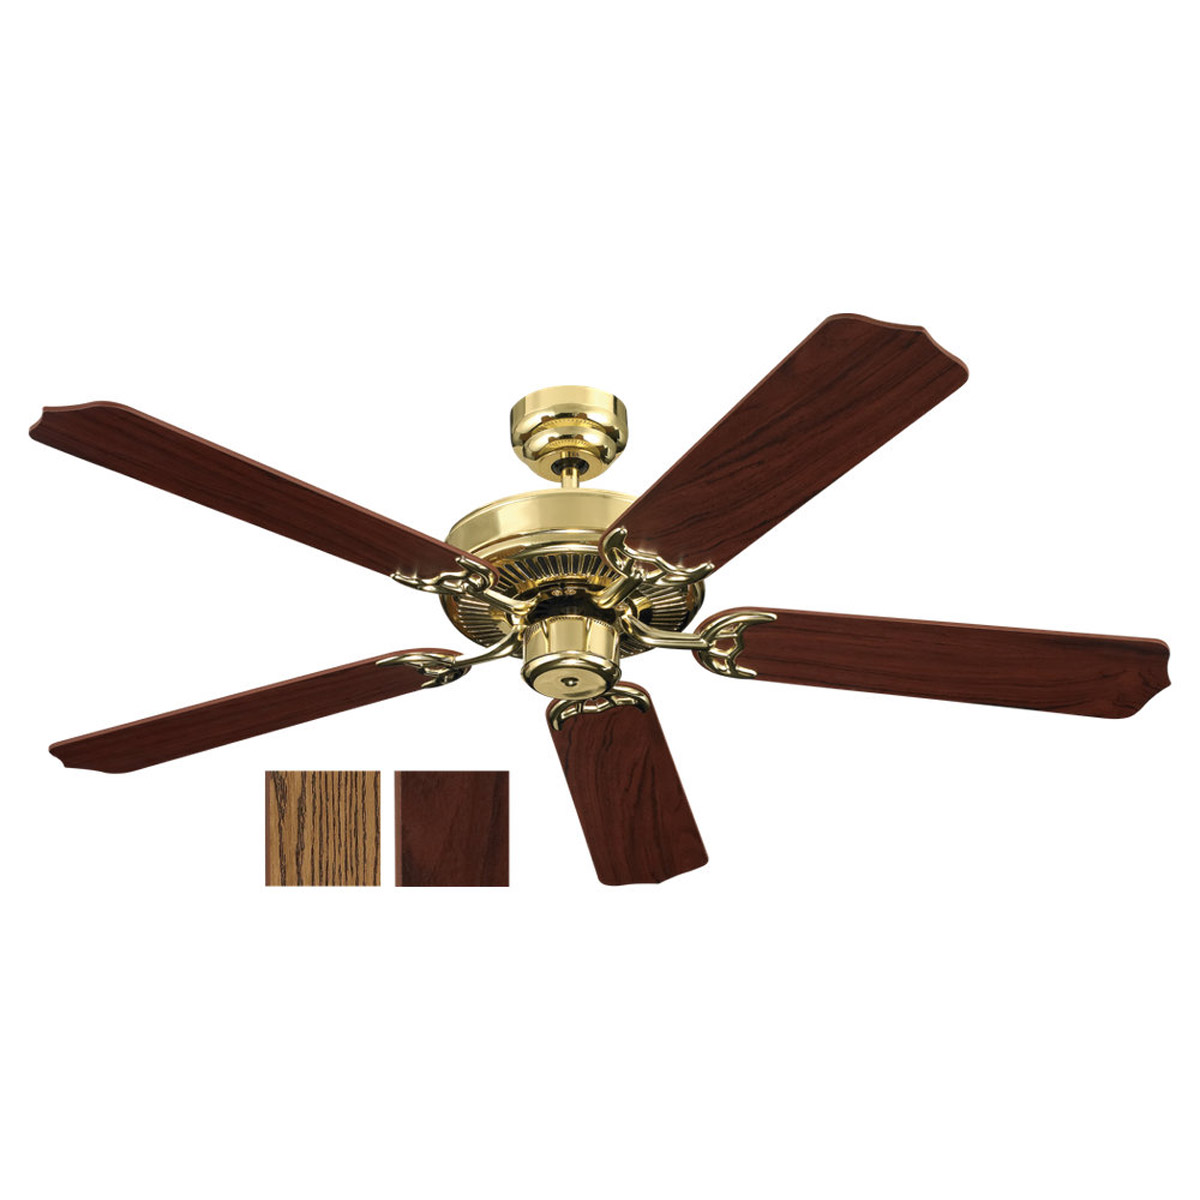 Sea Gull Lighting 52in 5 Blade Fan in Polished Brass 15030-02